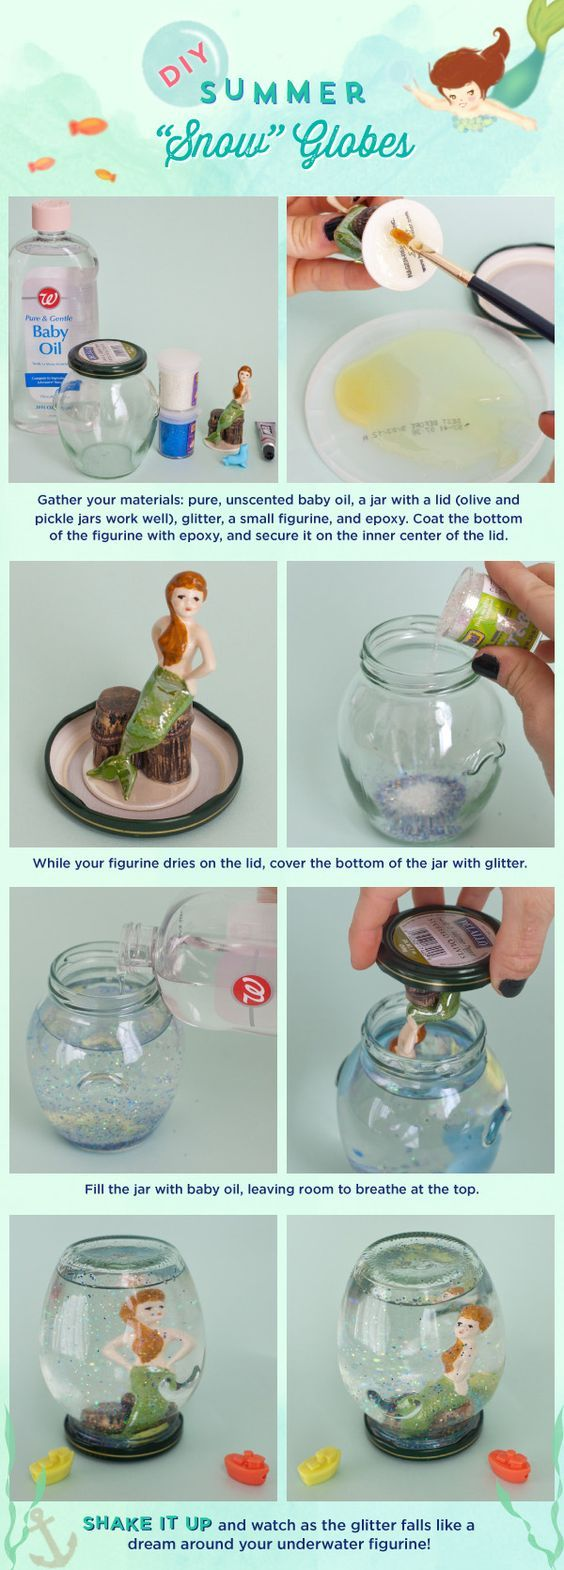 "Shake Things Up: Make a DIY Summer ""Snow"" Globe!- I like the project, but not all the materials used..:"